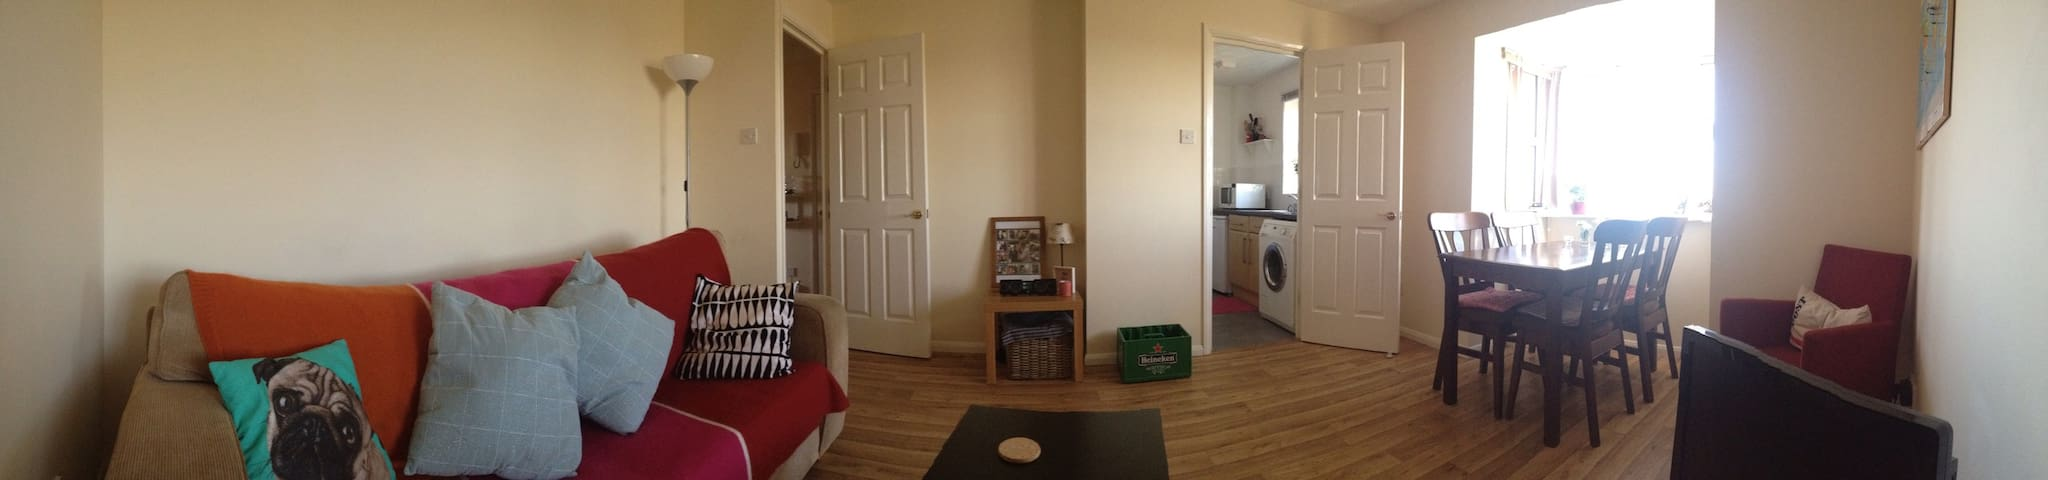 Spacious flat in Biggleswade - Biggleswade - Appartamento